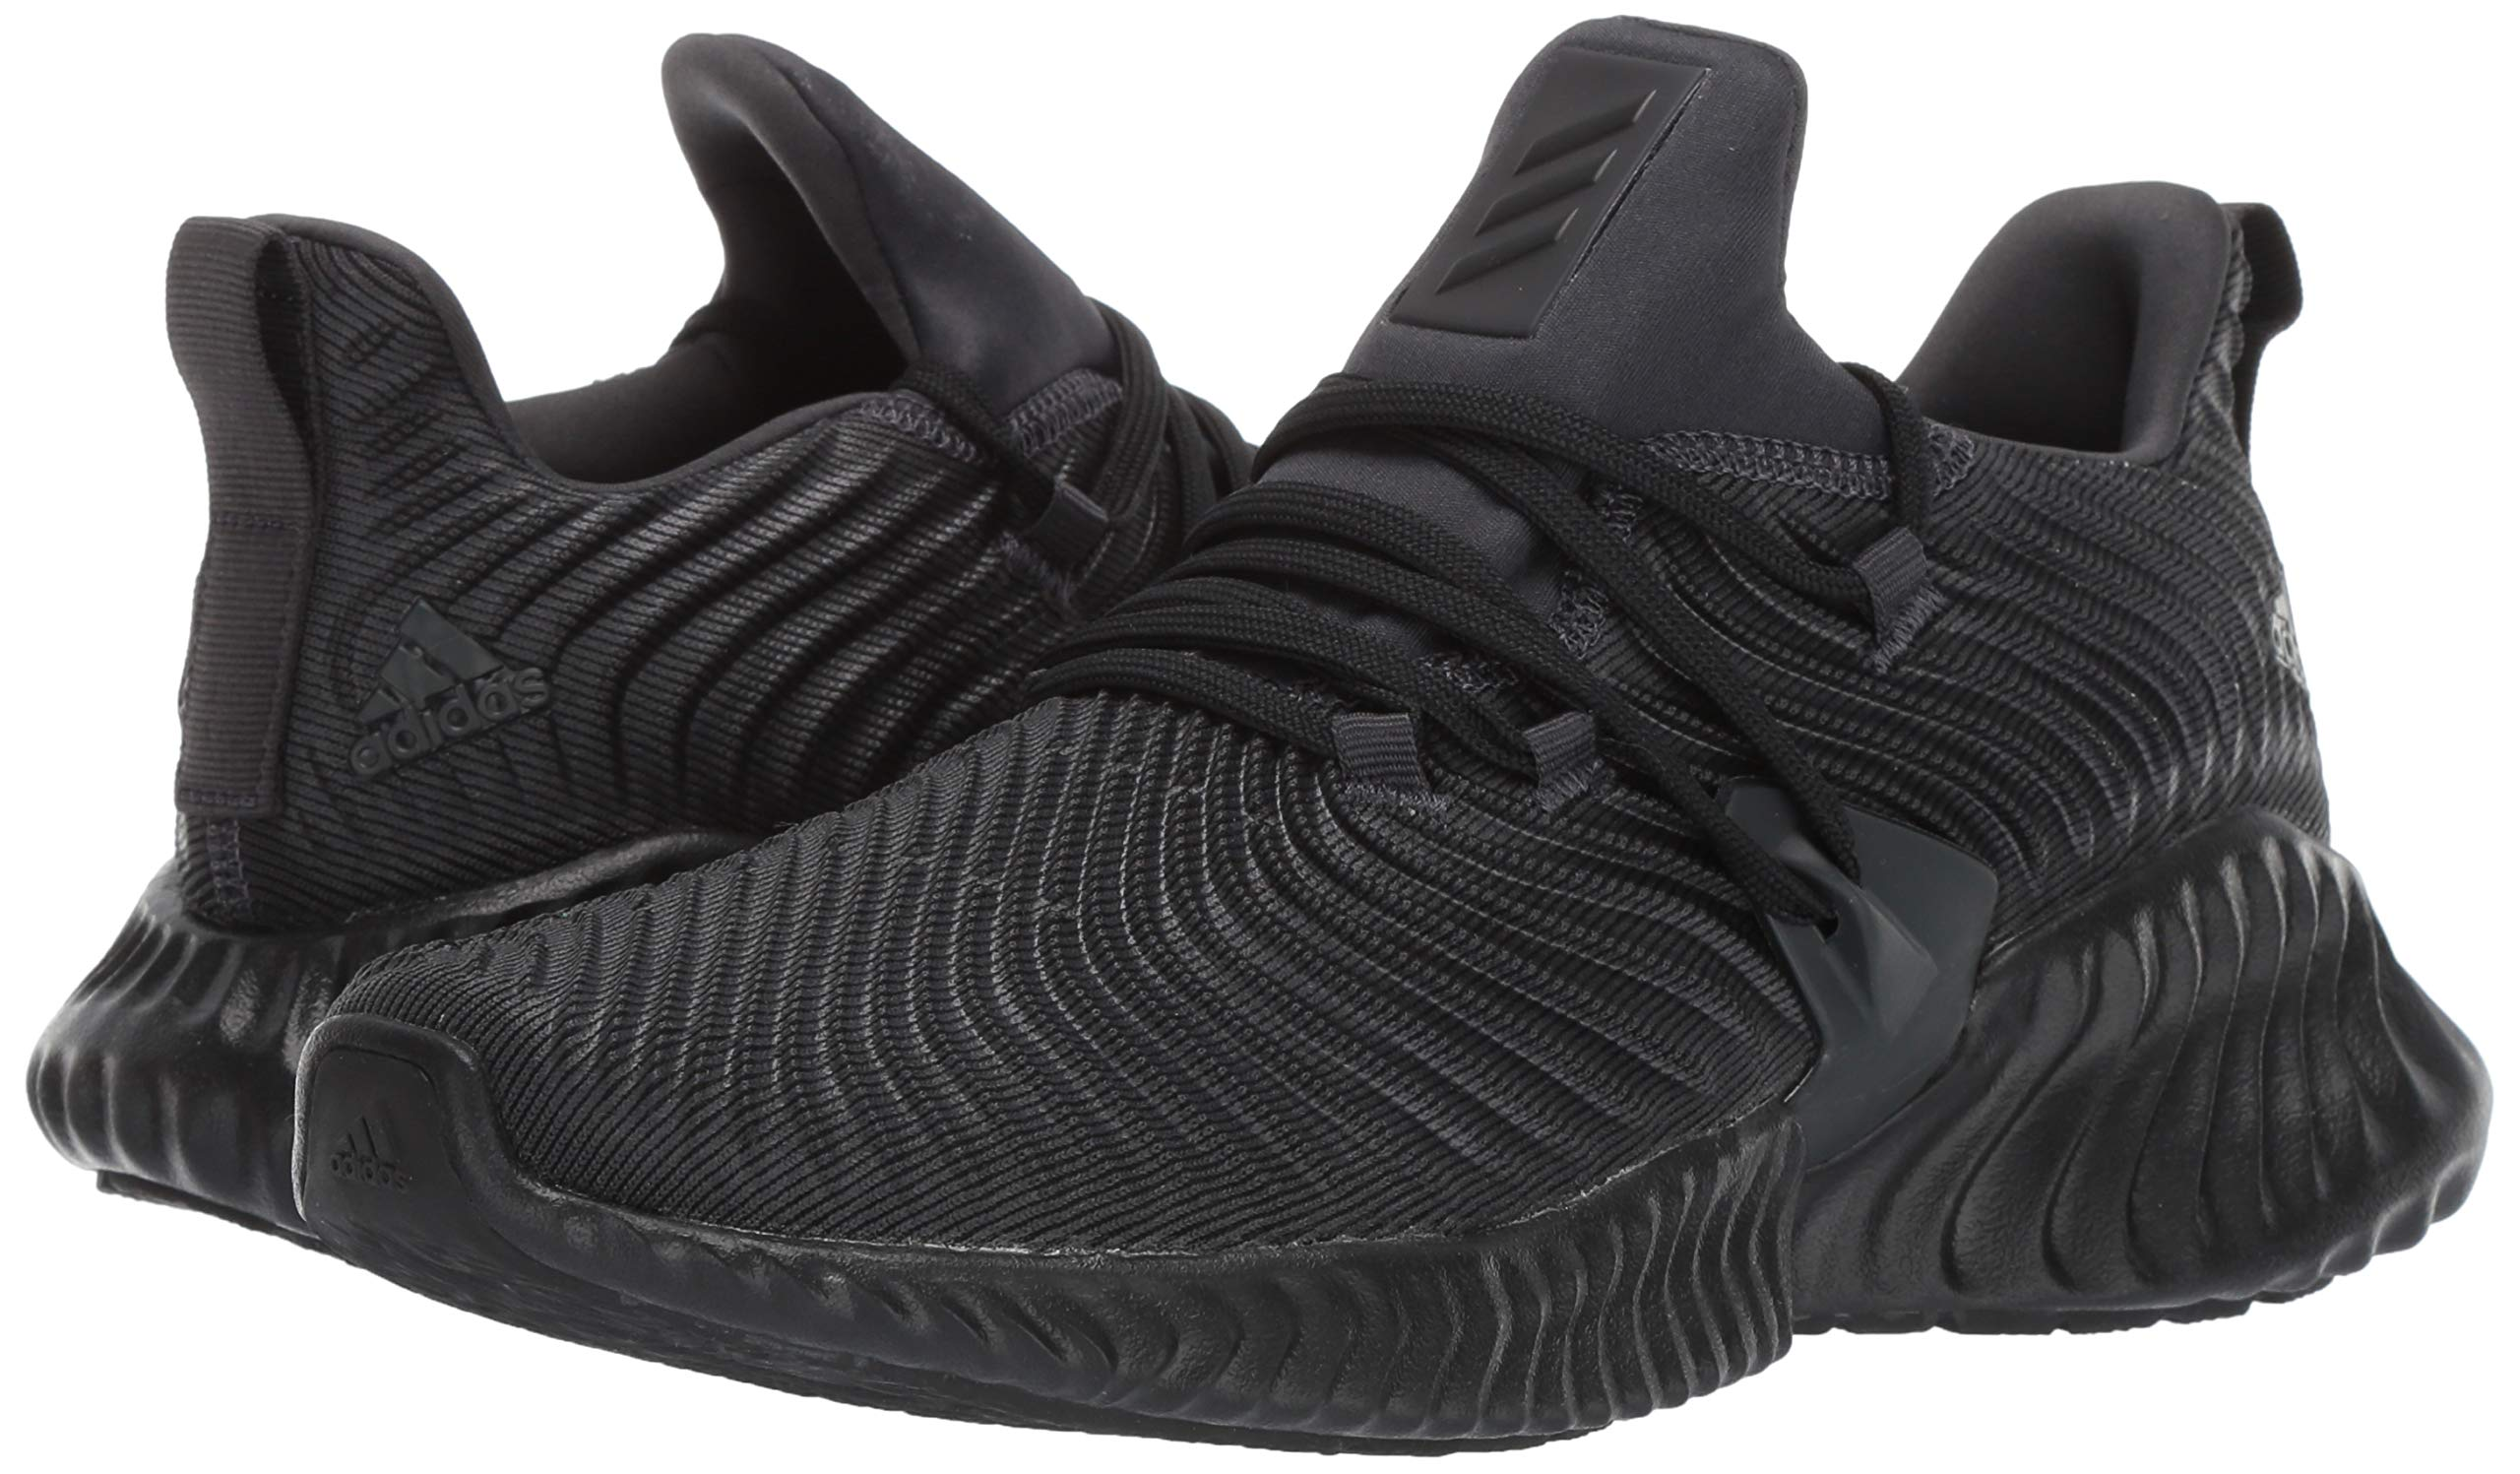 Adidas Kids Alphabounce Instinct, Carbon/Core Black/Carbon, 2 M US Little Kid by adidas (Image #6)